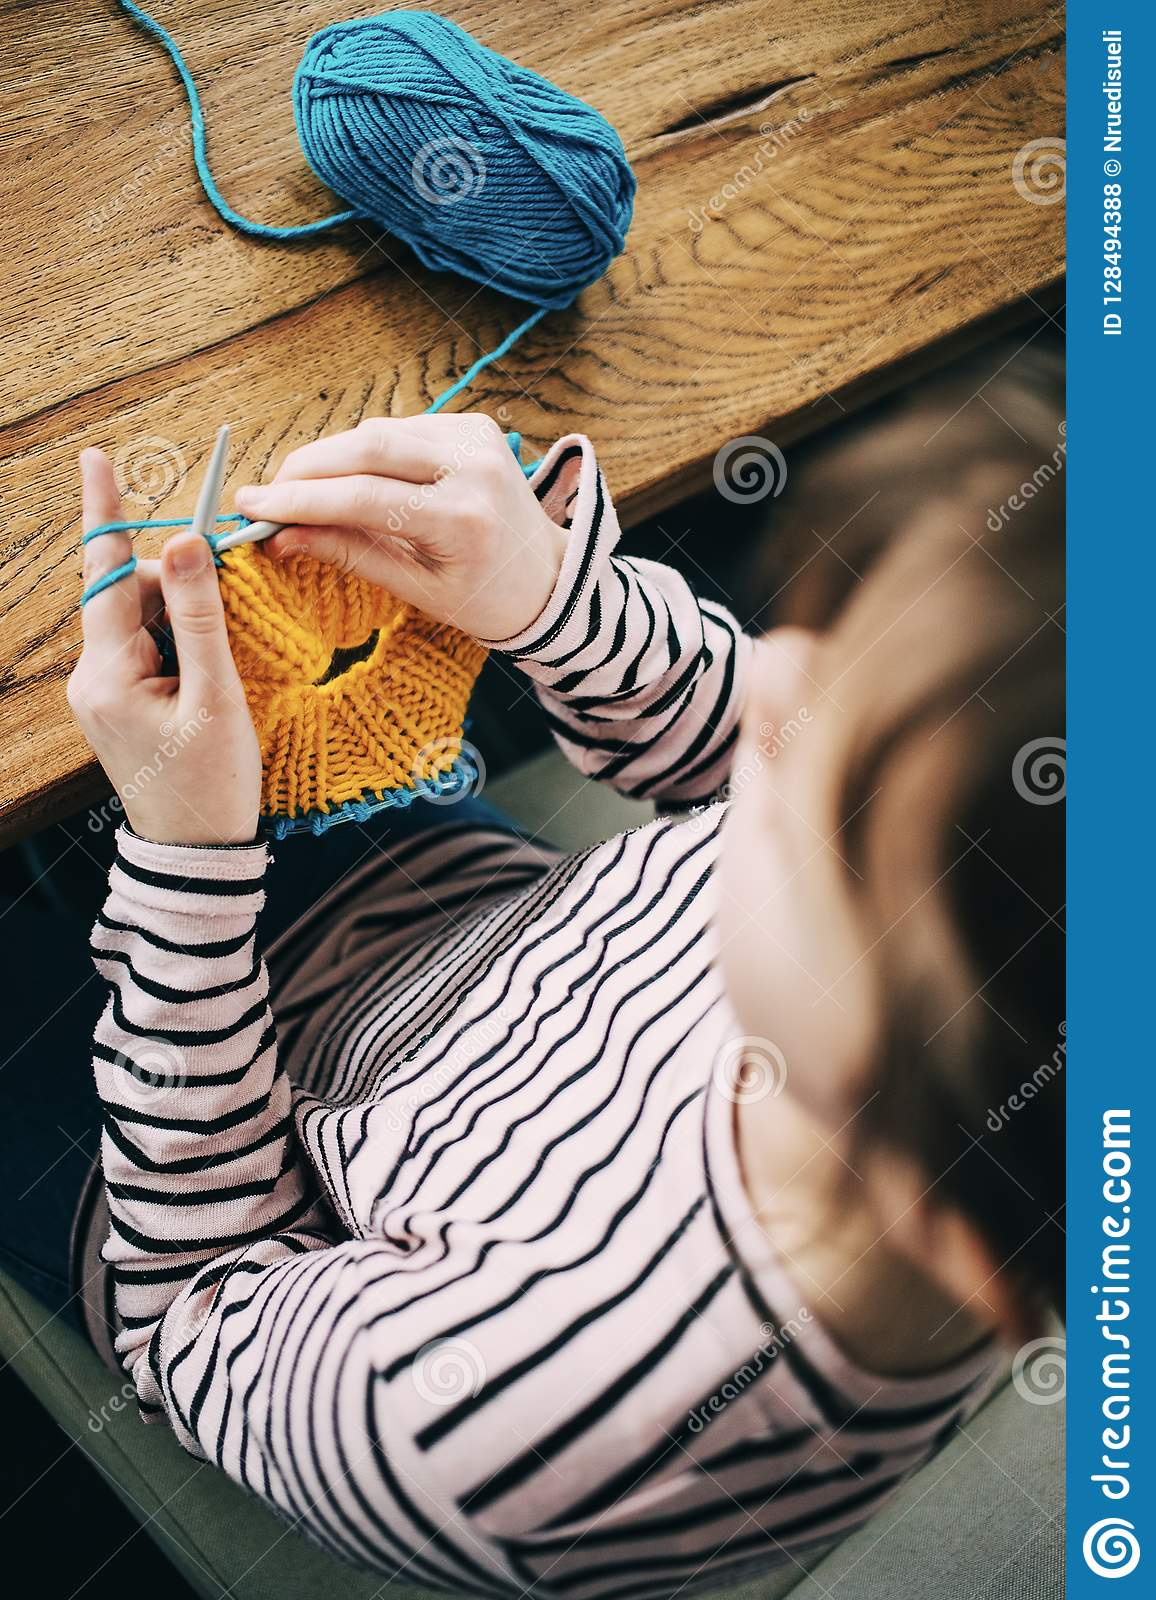 Young girl knitting a circle scarf. Learnig knitting basics.